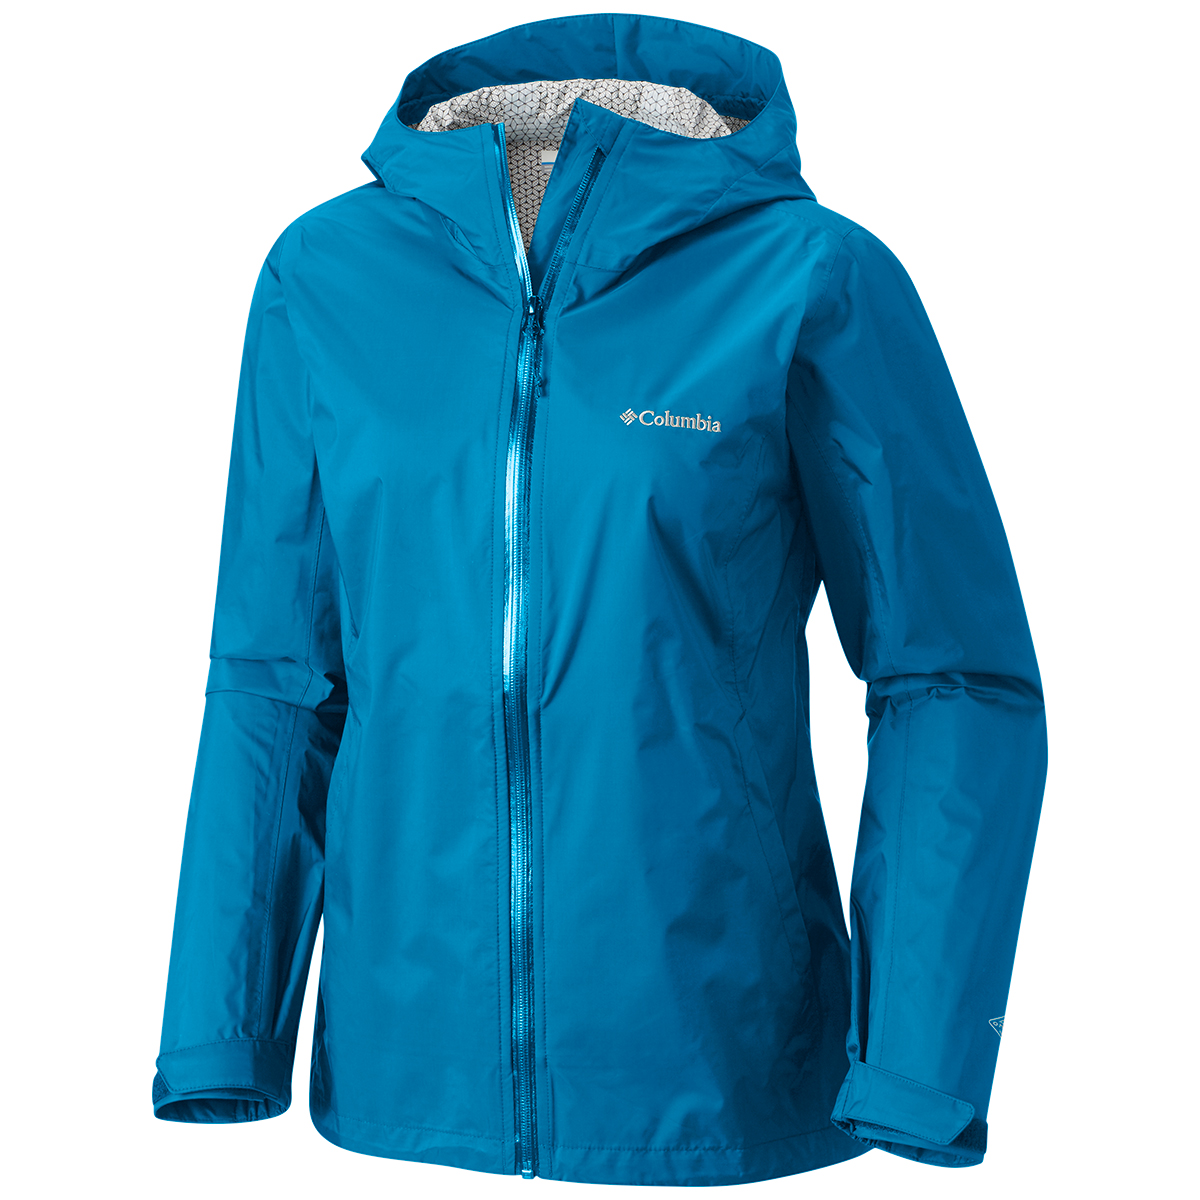 Columbia Women's Evapouration Jacket - Blue, M